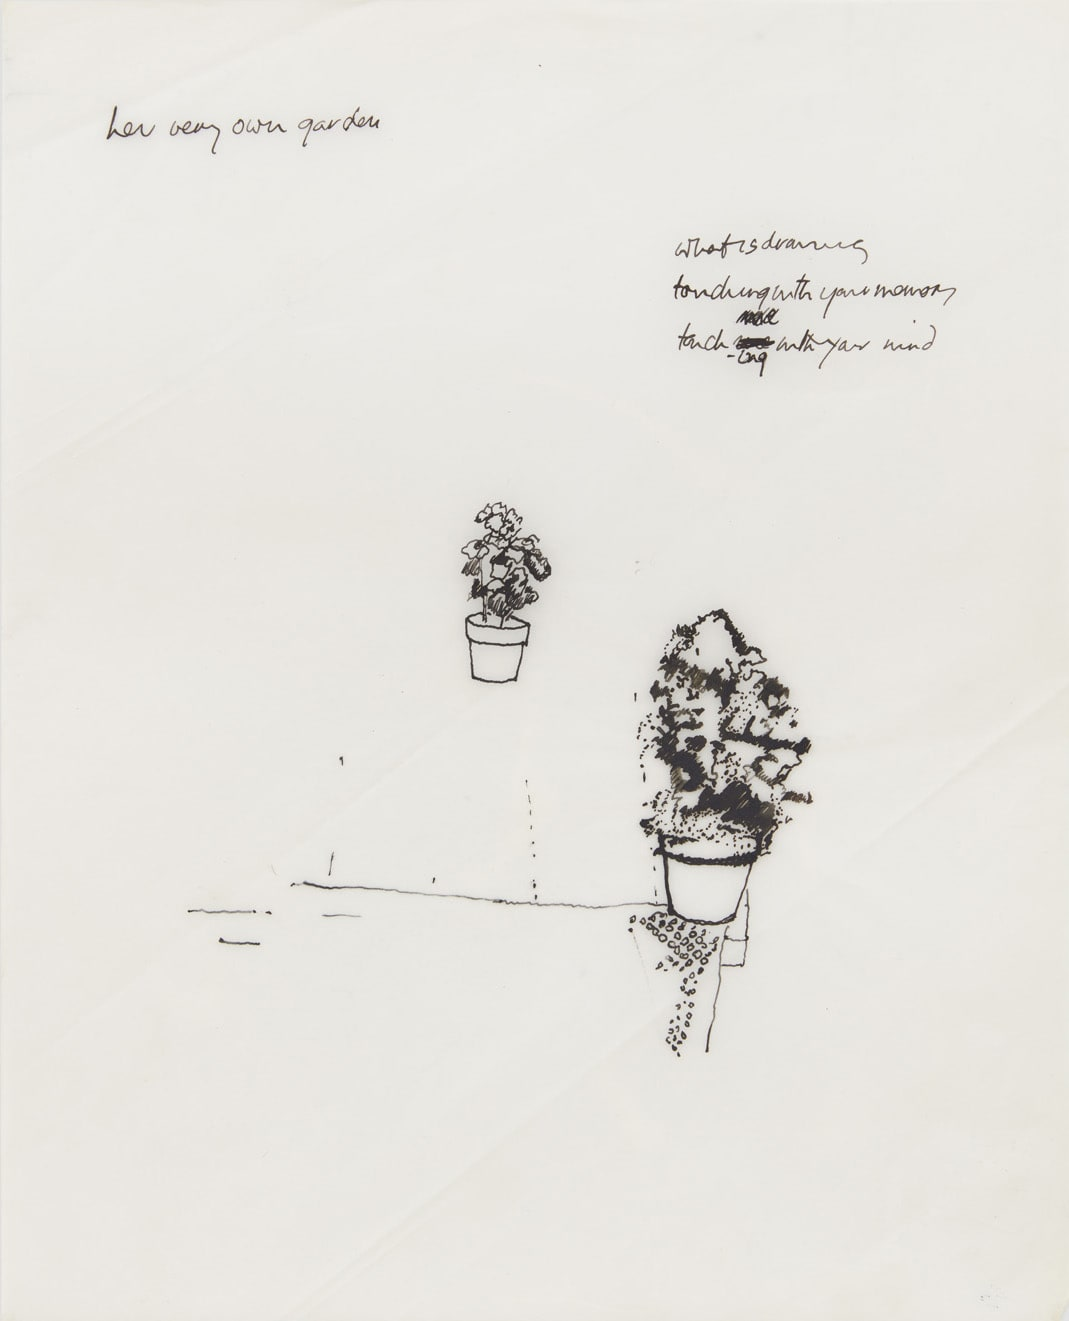 Shelagh WAKELY her very own garden, 1974-79 Ink on translucent paper, needle 25 x 20 cm